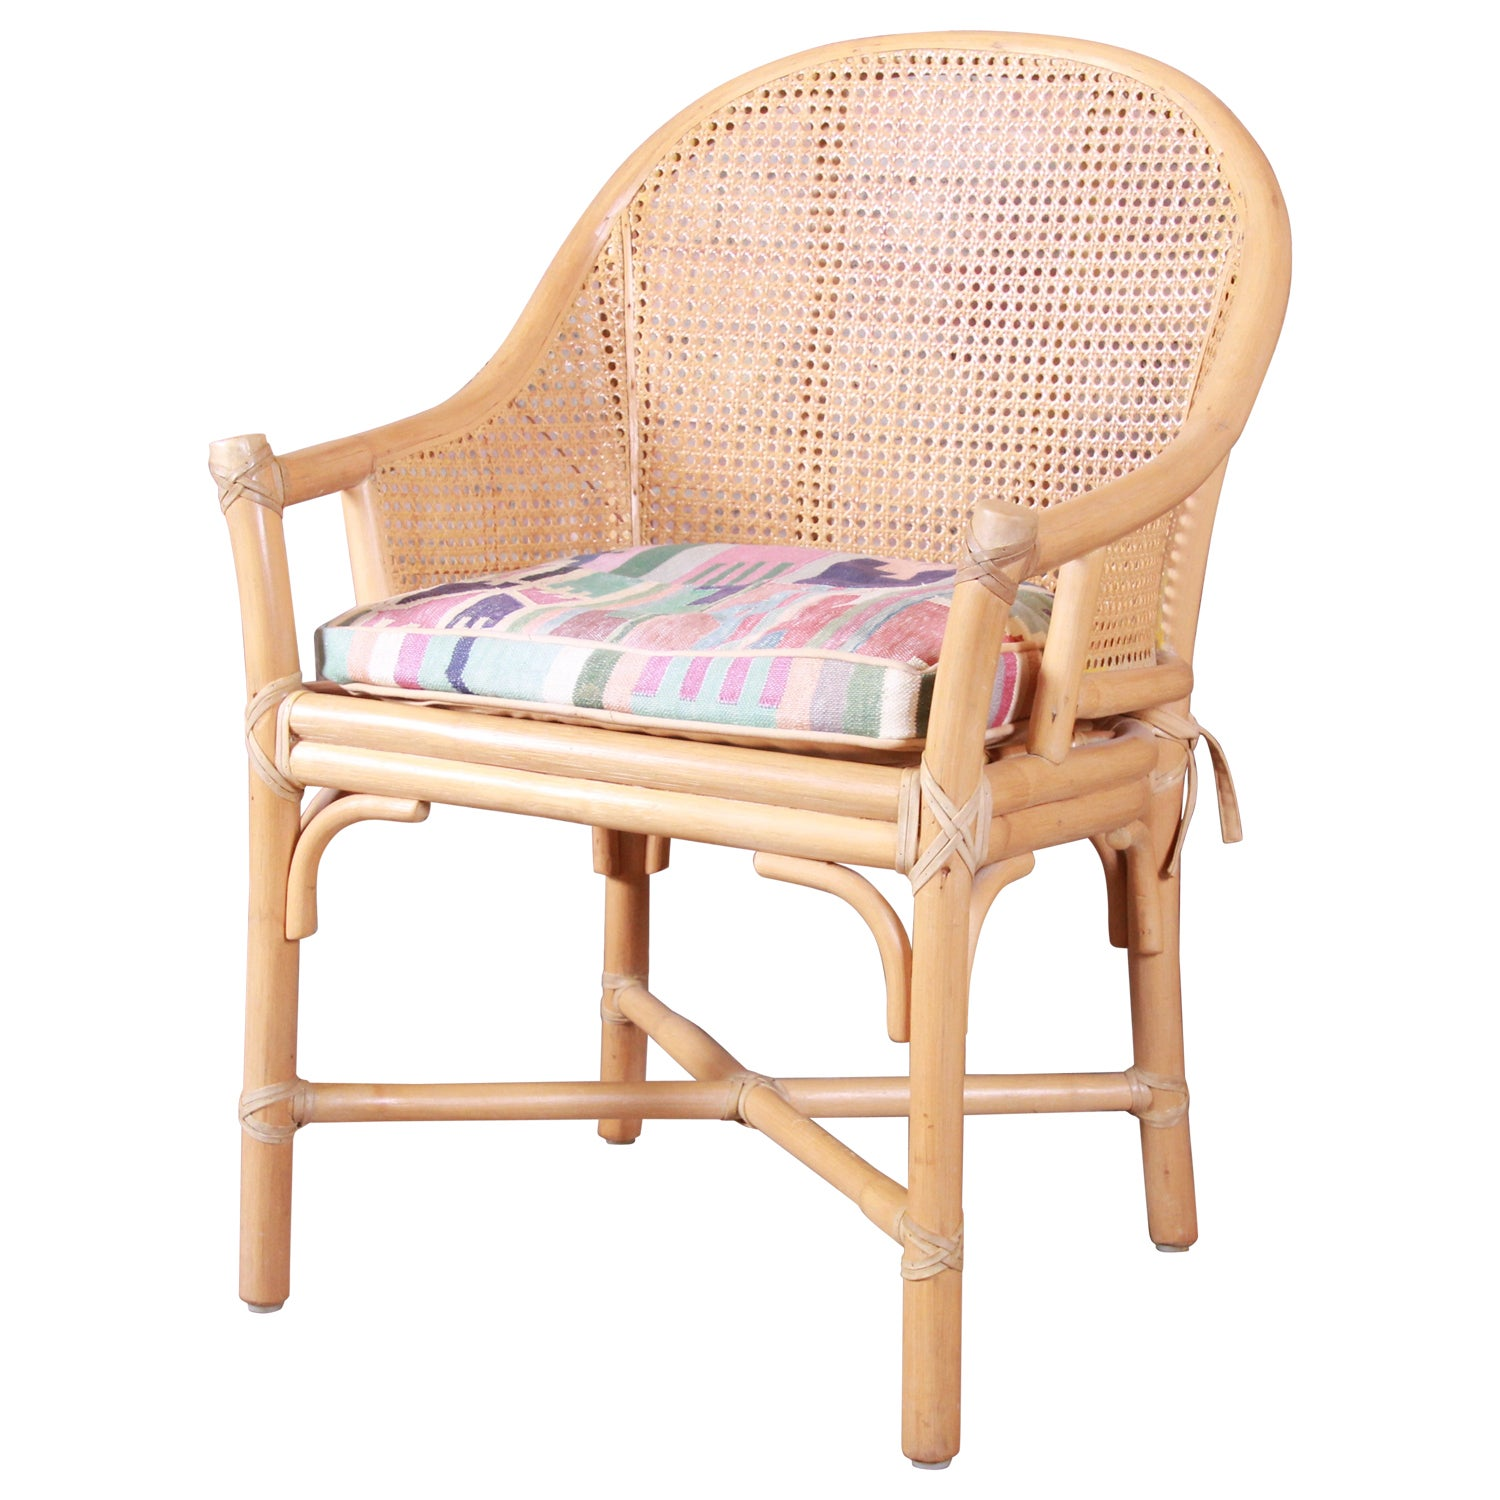 McGuire Hollywood Regency Organic Modern Bamboo and Cane Club Chair